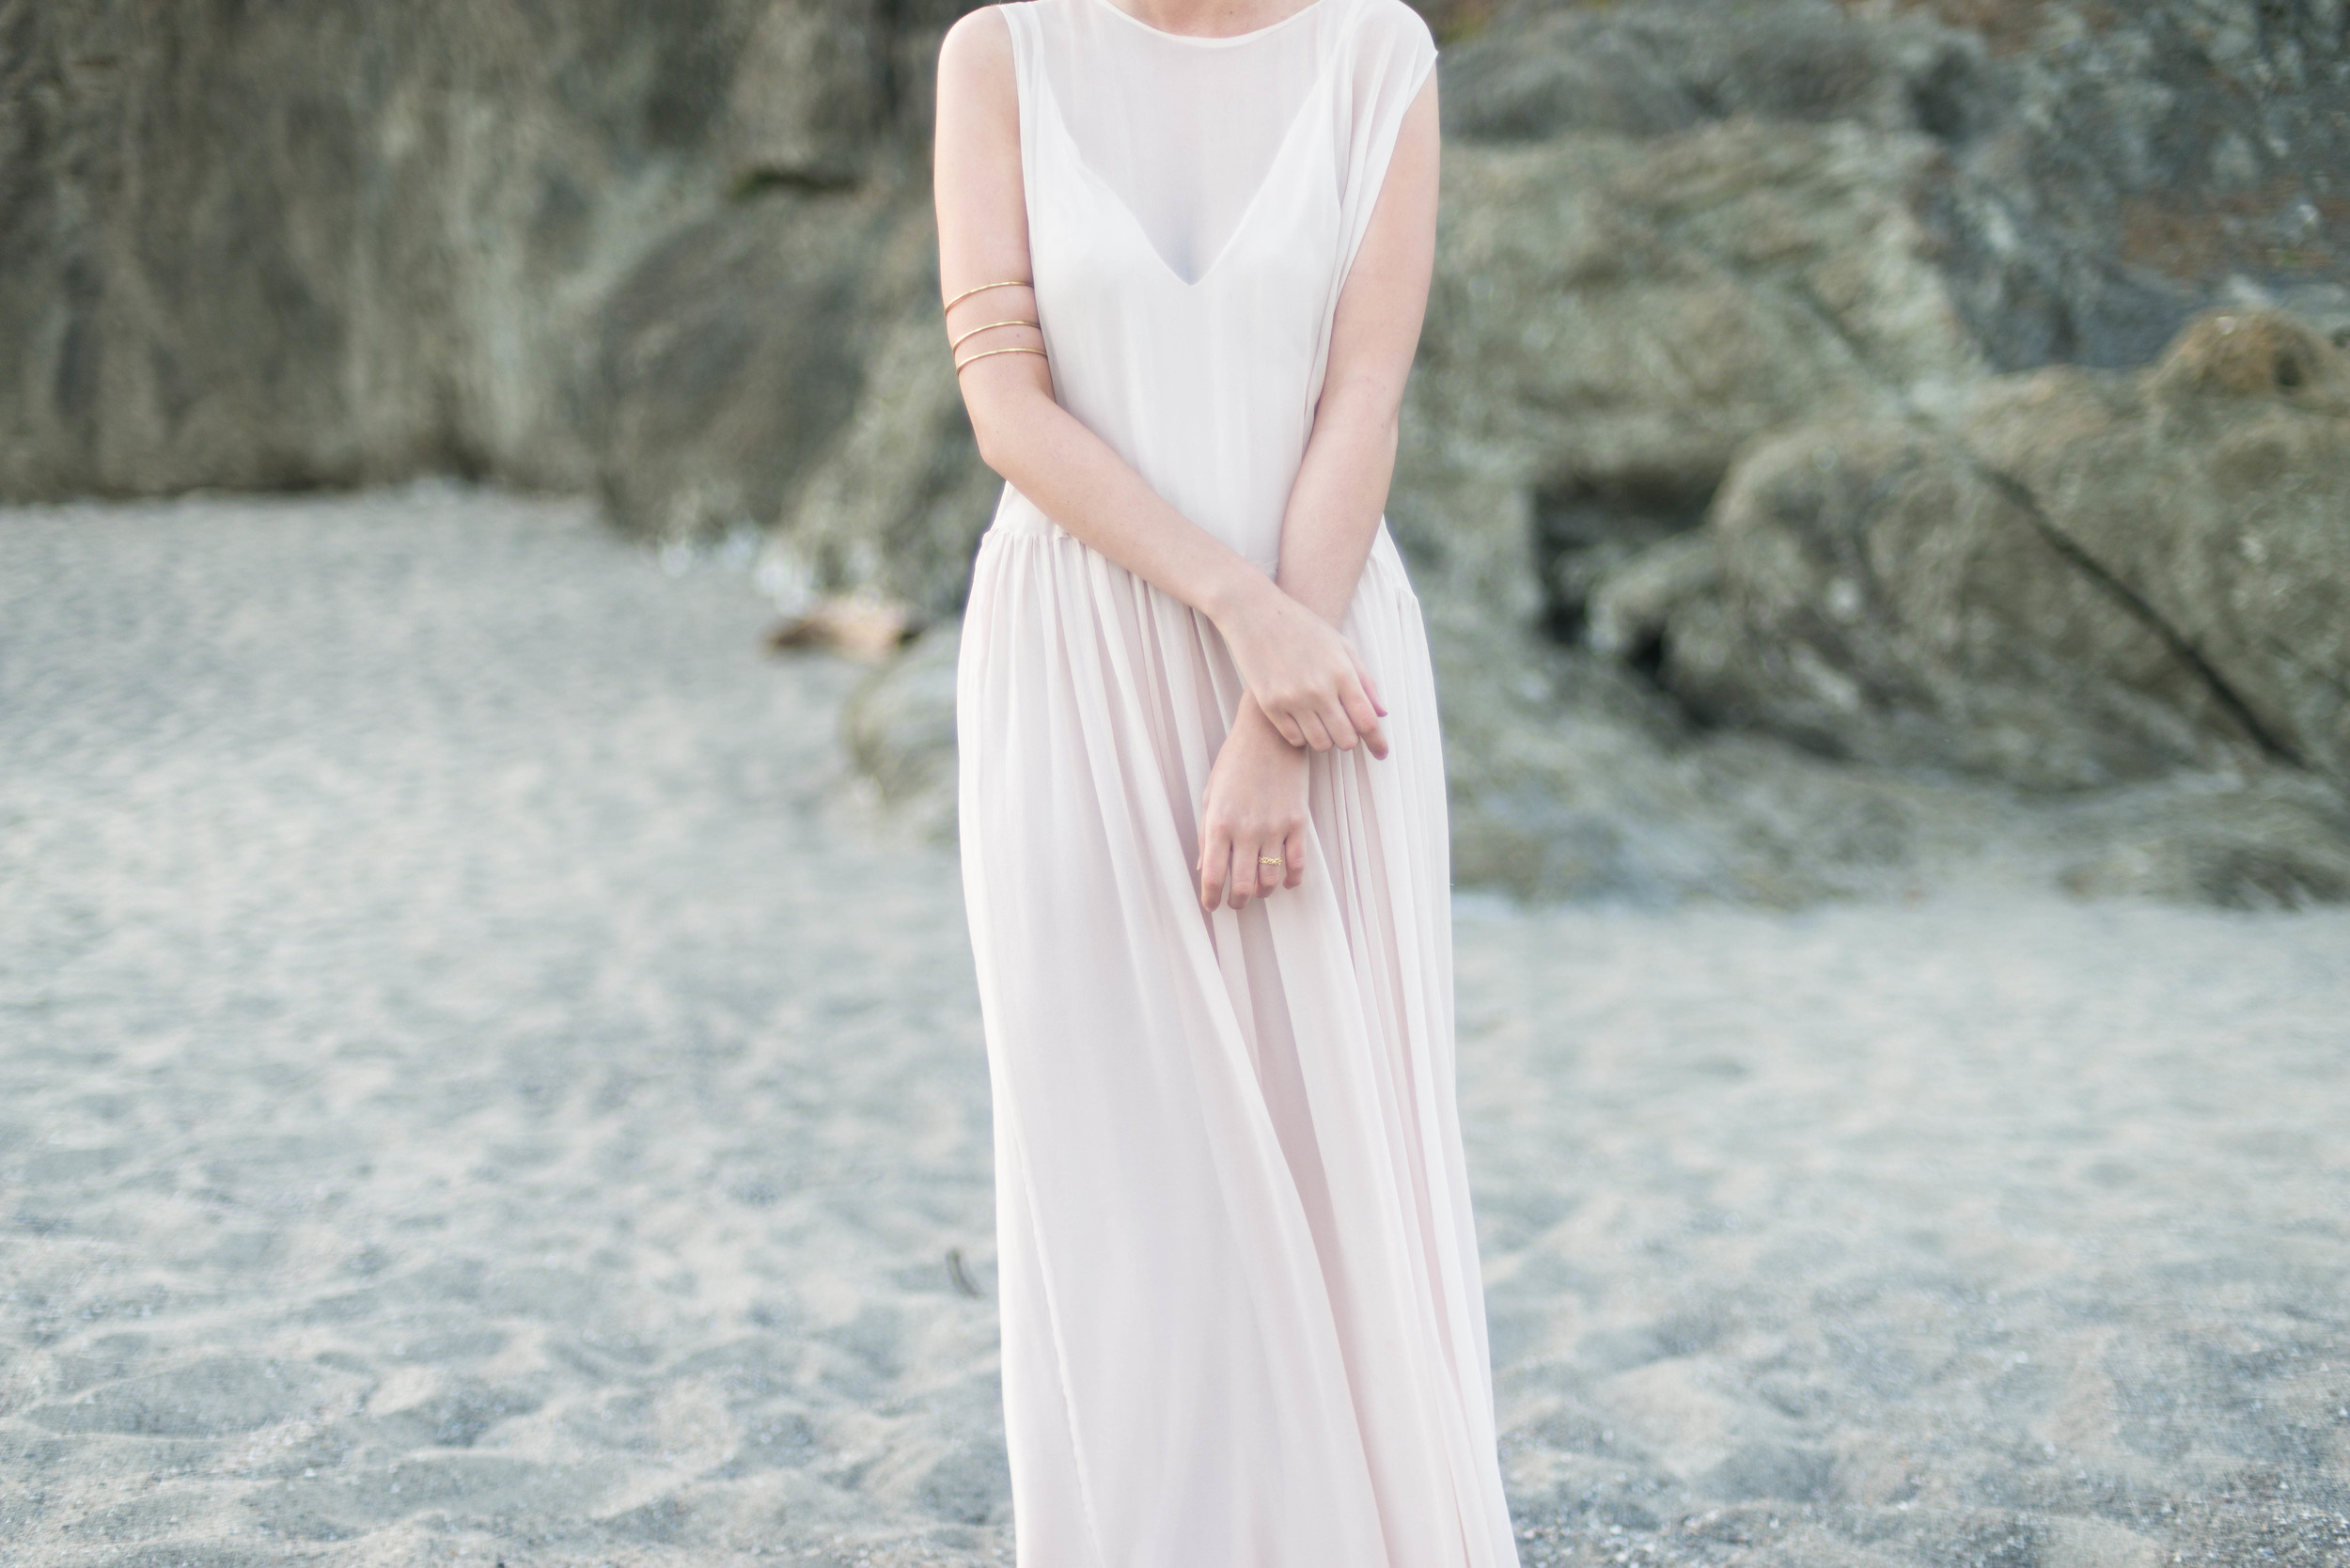 Meghan Mehan Fine Art Photography - Elk, California - Beach Bridal_Chloe - 003-3.jpg